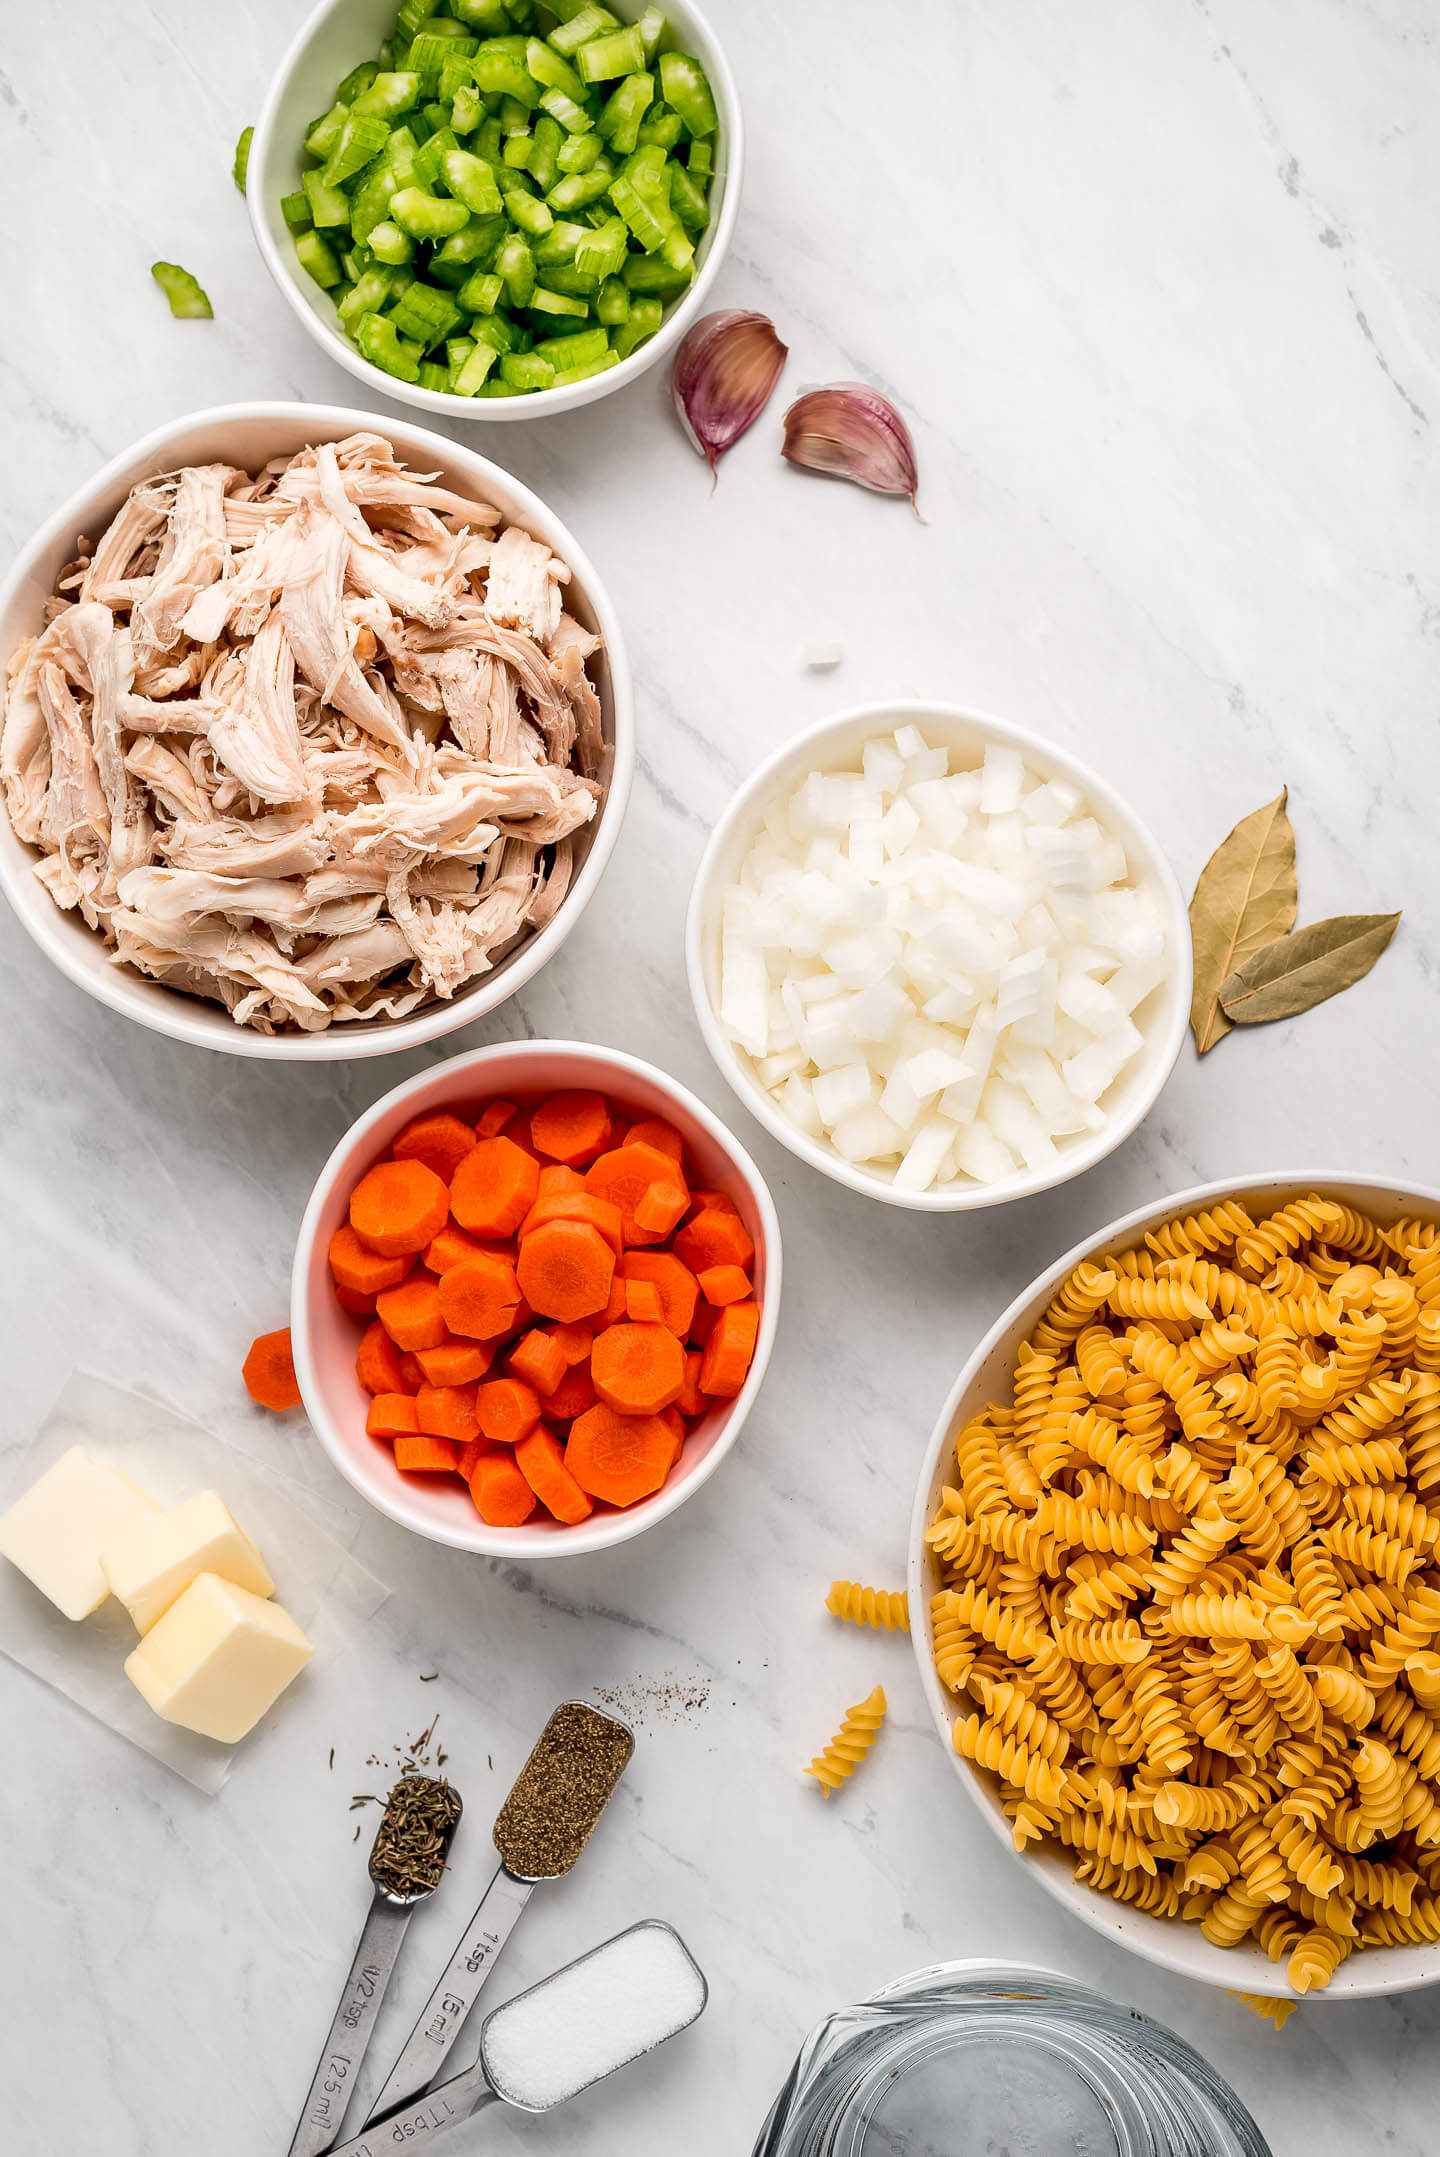 Ingredients on a marble surface- celery, shredded chicken carrots, onions, pasta, spices, butter.